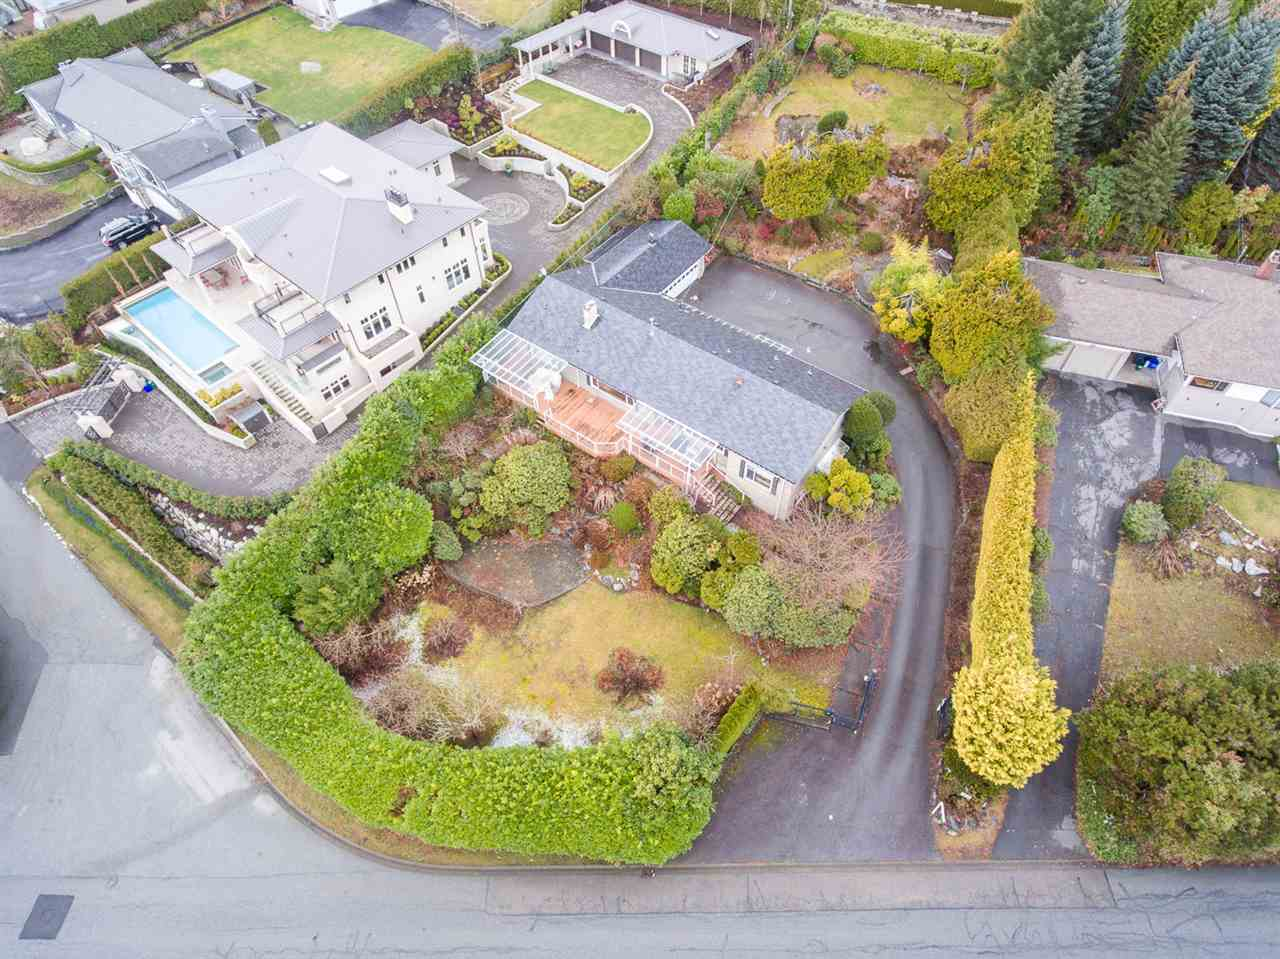 Listing Image of 910 EYREMOUNT DRIVE